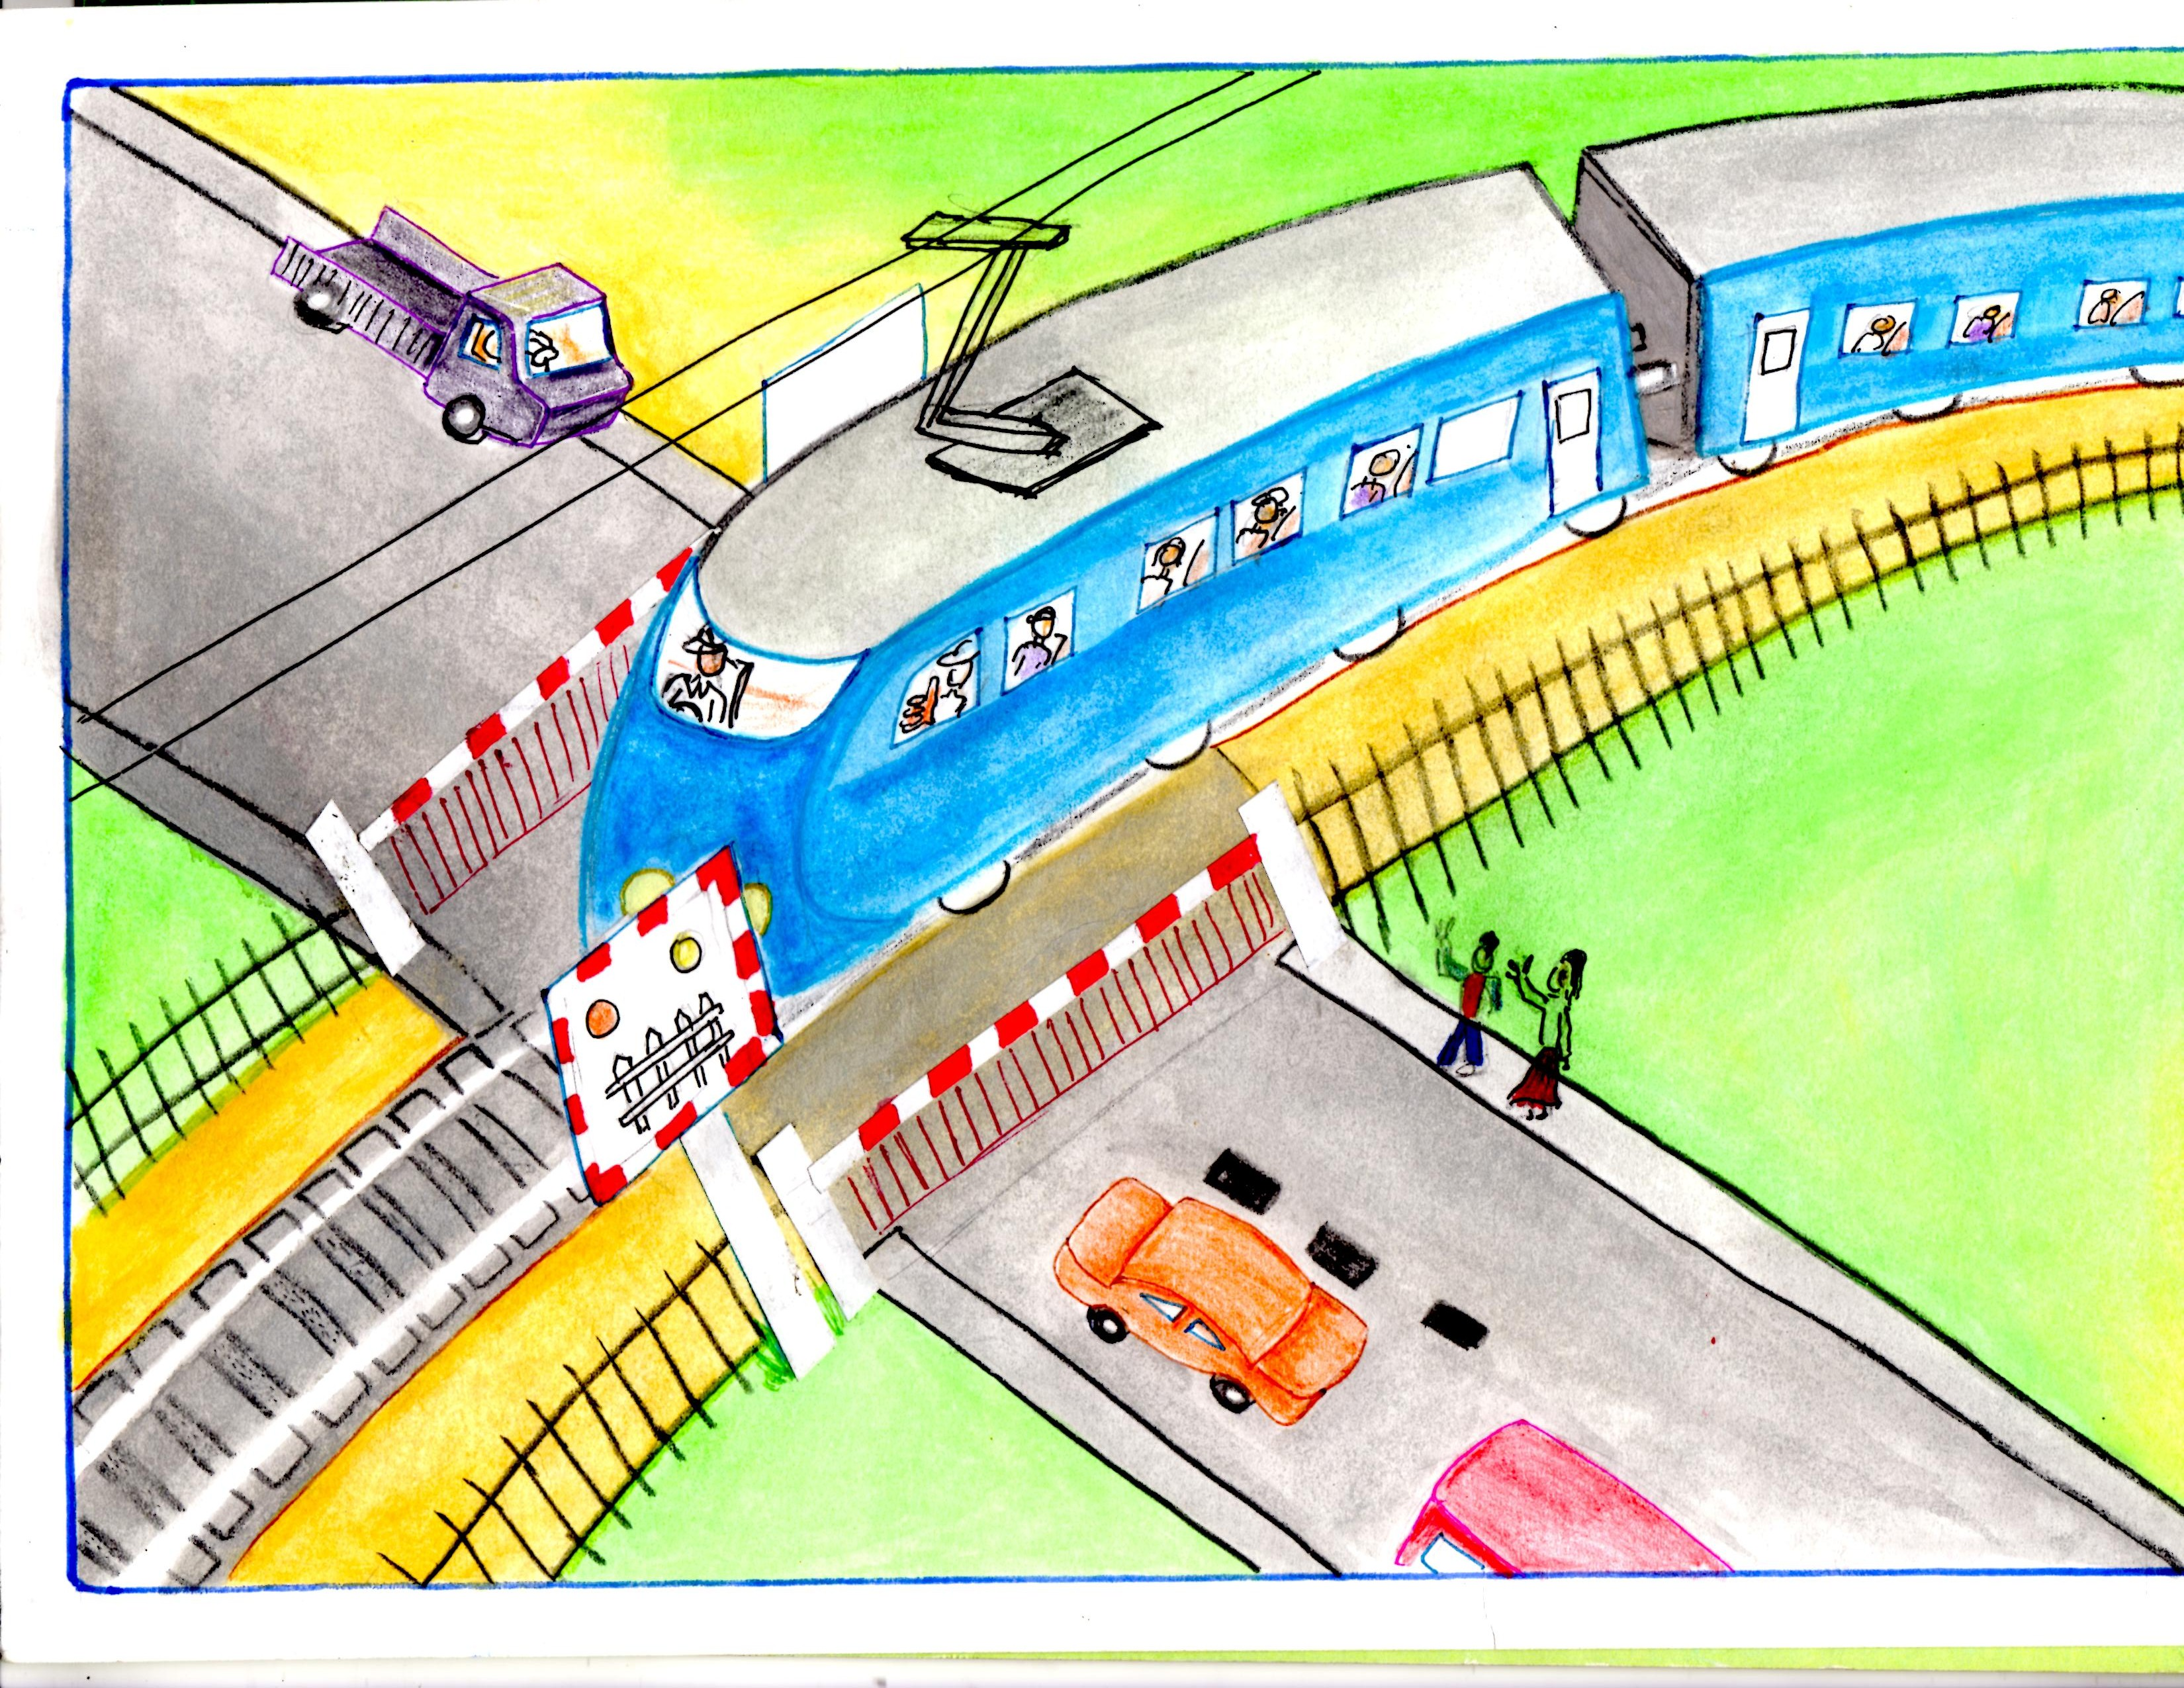 3300x2550 3rd Uicilcad Drawing Contest For Children On Level Crossing